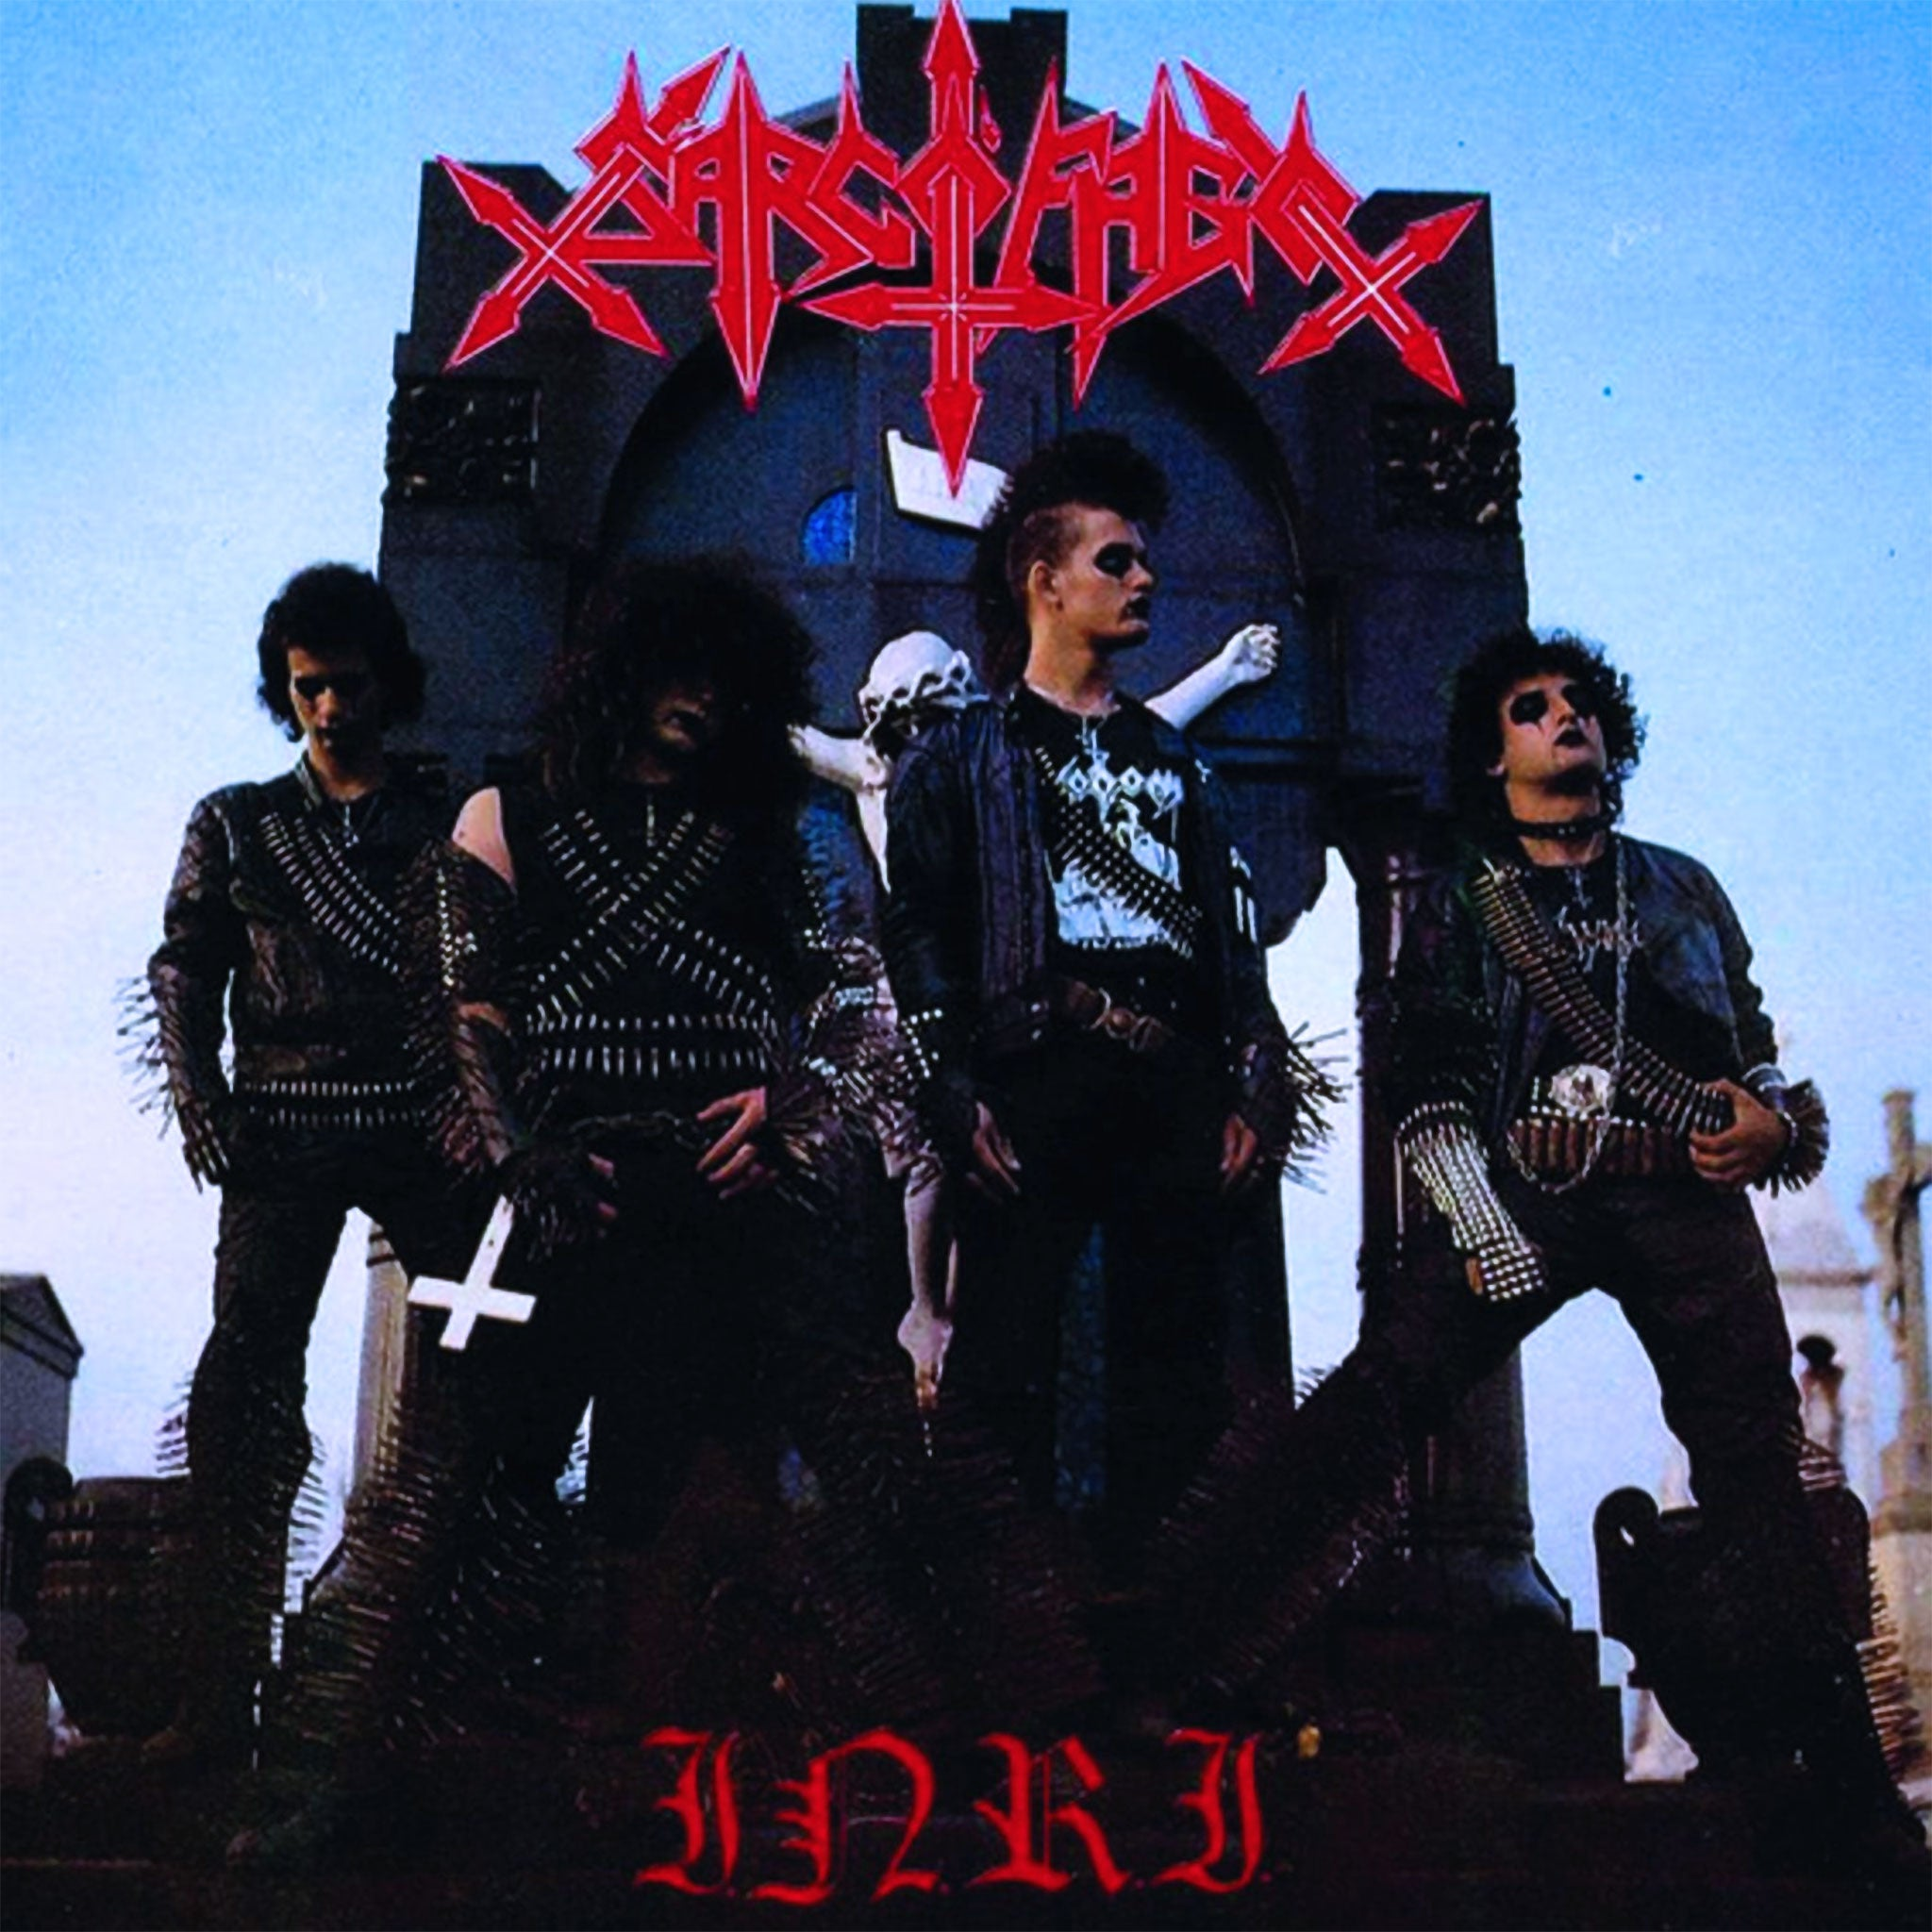 Sarcofago - I.R.N.I. (Blue Cover) (2017 Reissue) (LP)